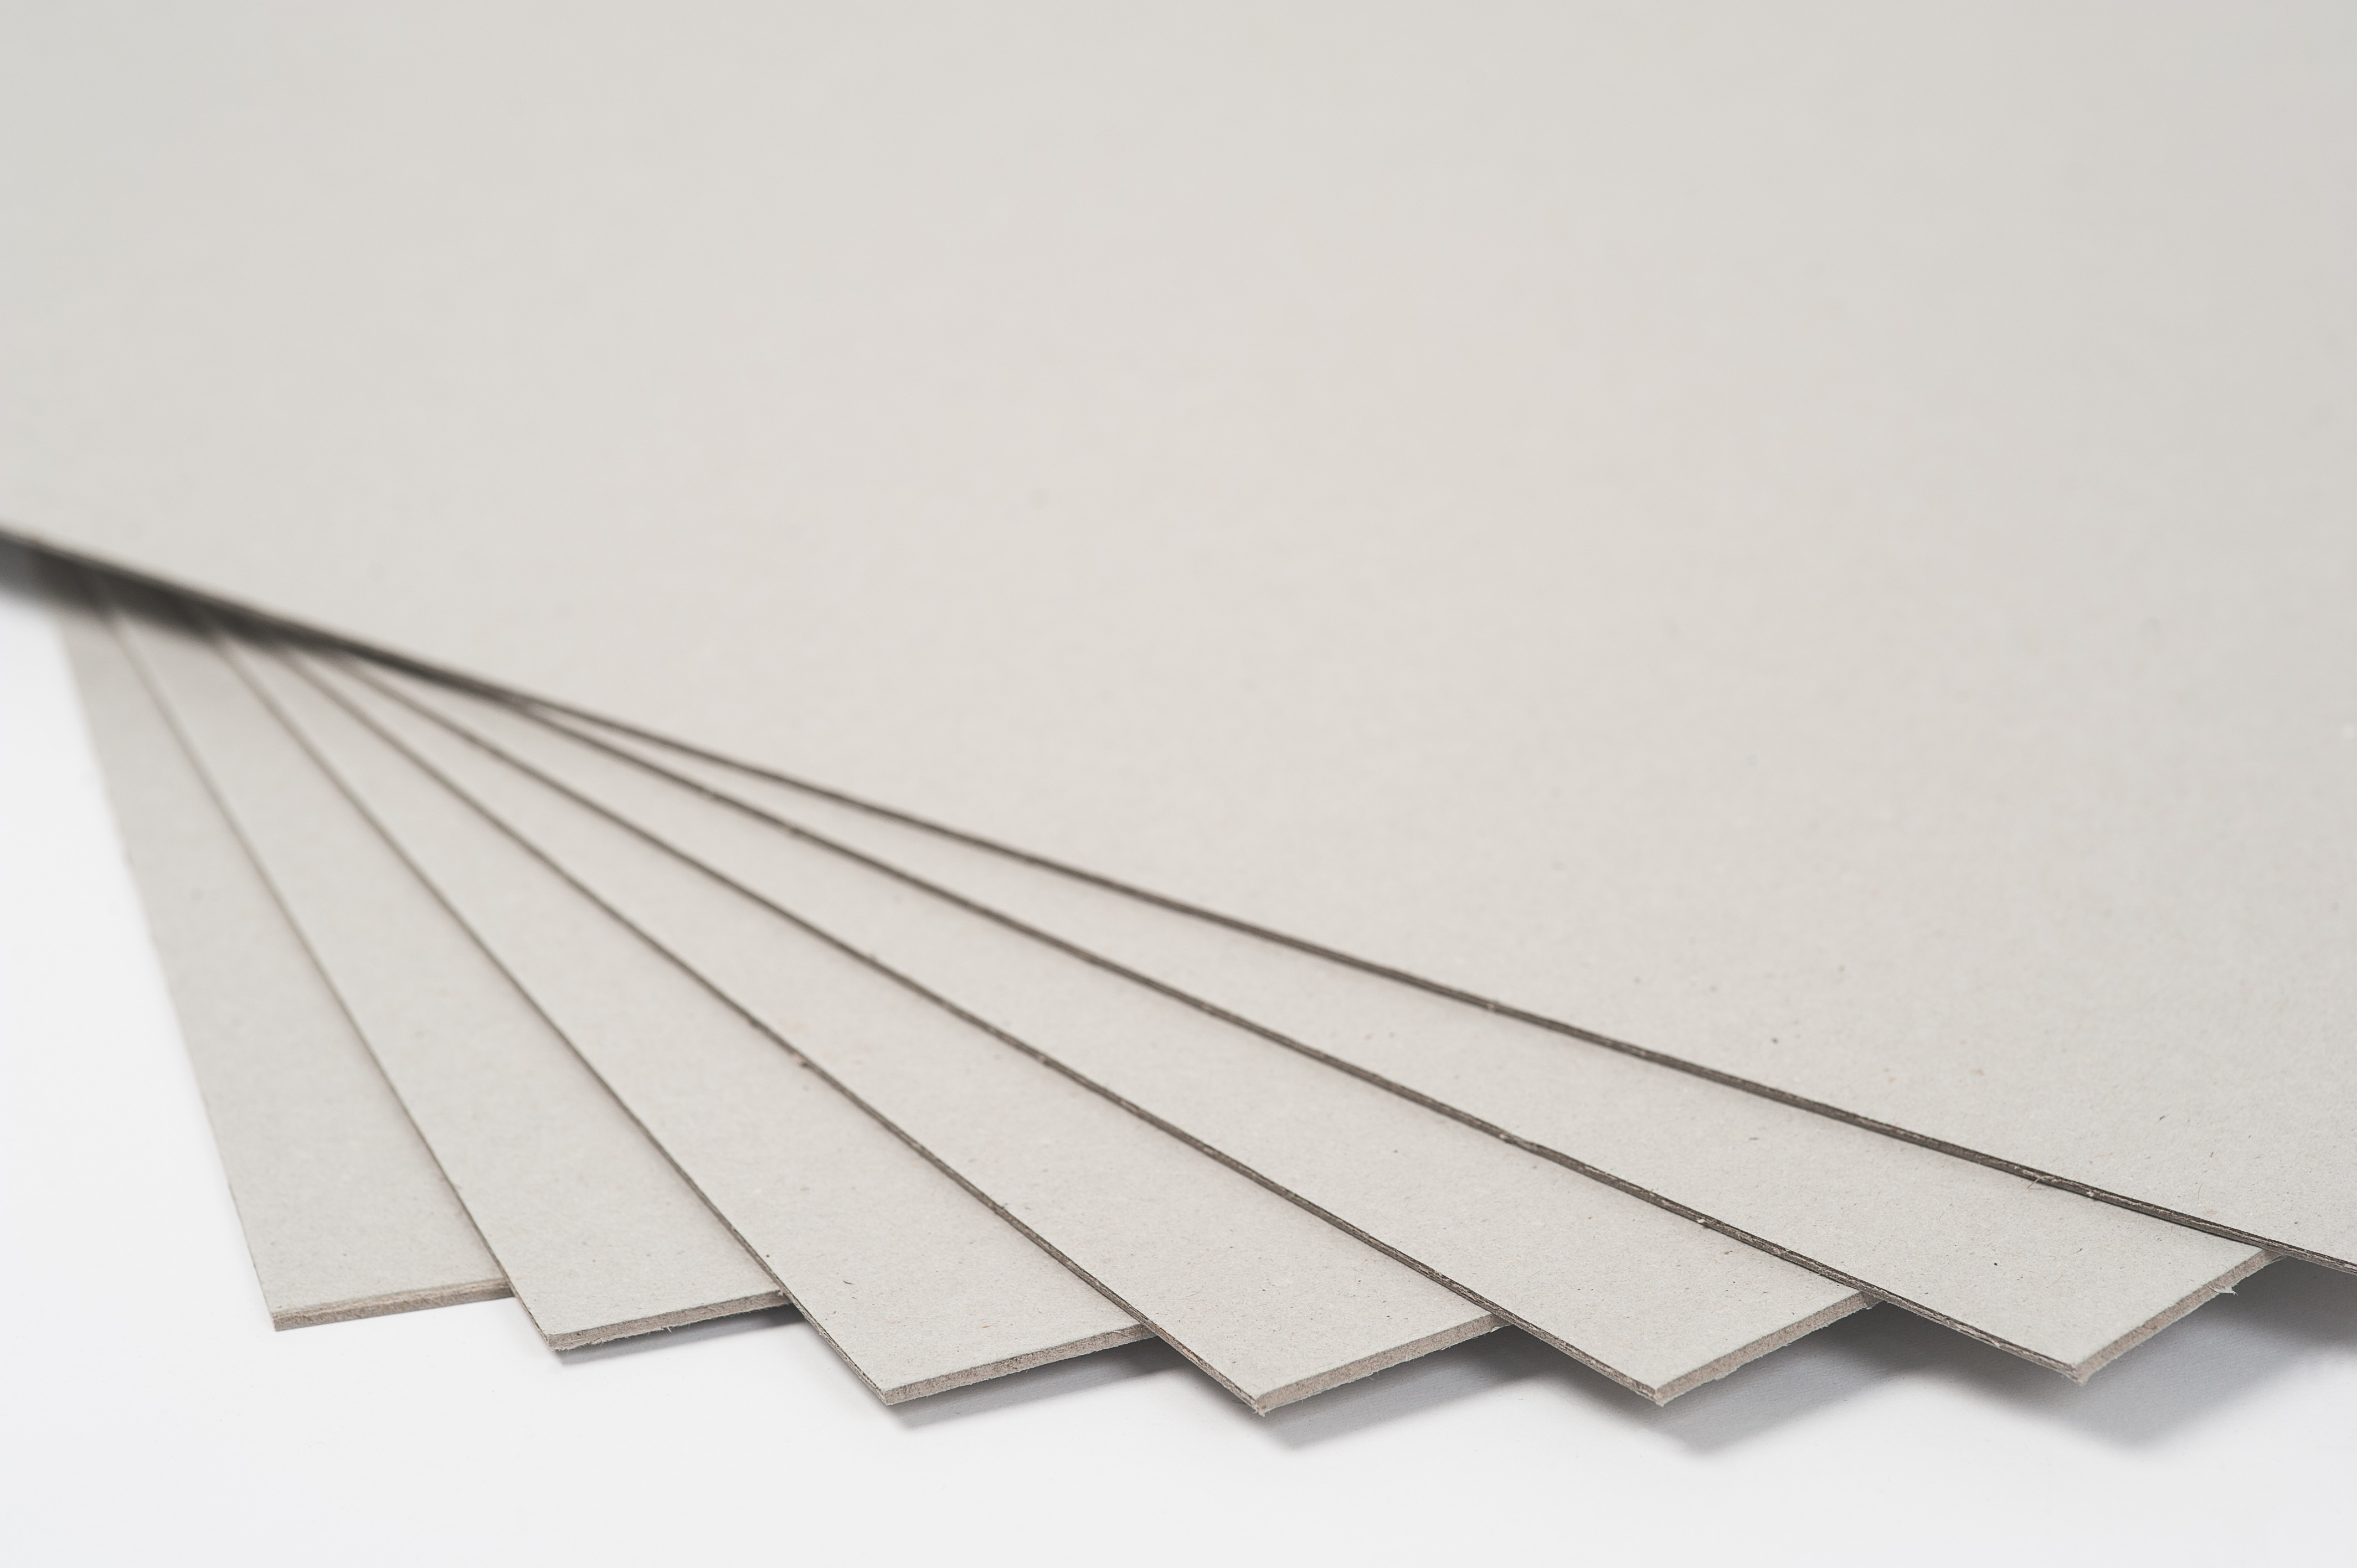 GREY BOARD A1+ (760 x 1020mm) 2mm thick